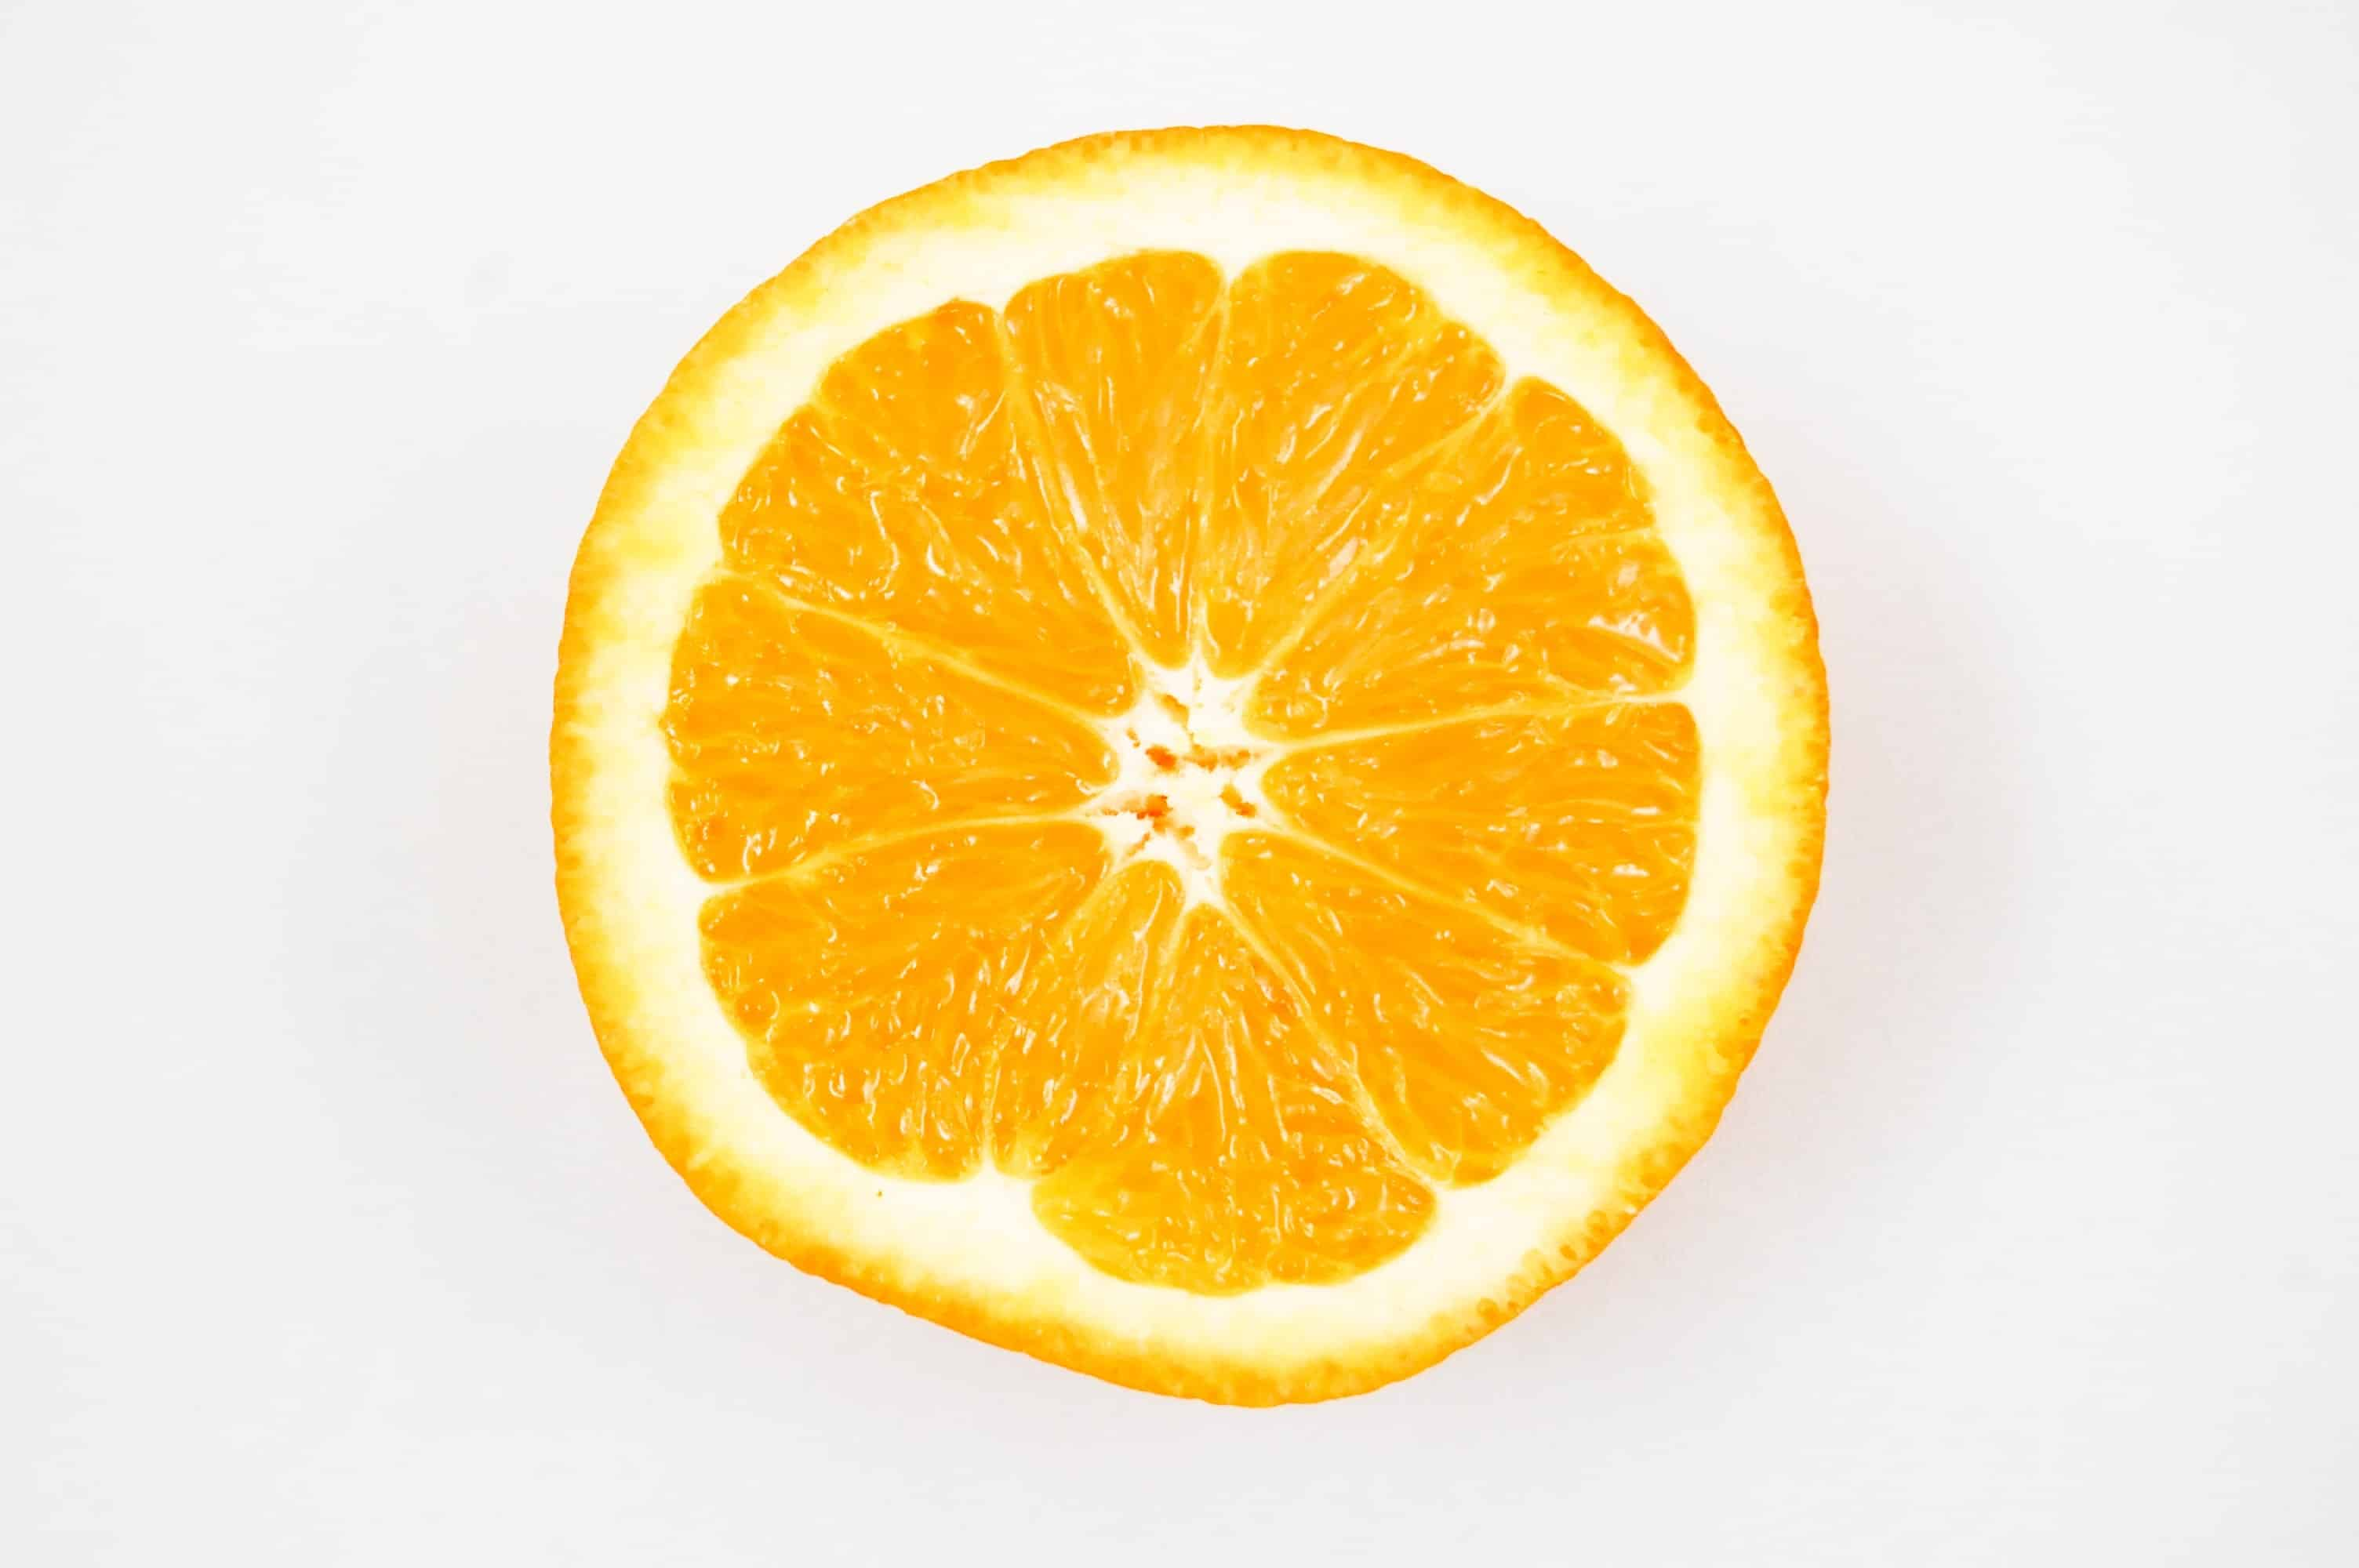 Half of an orange